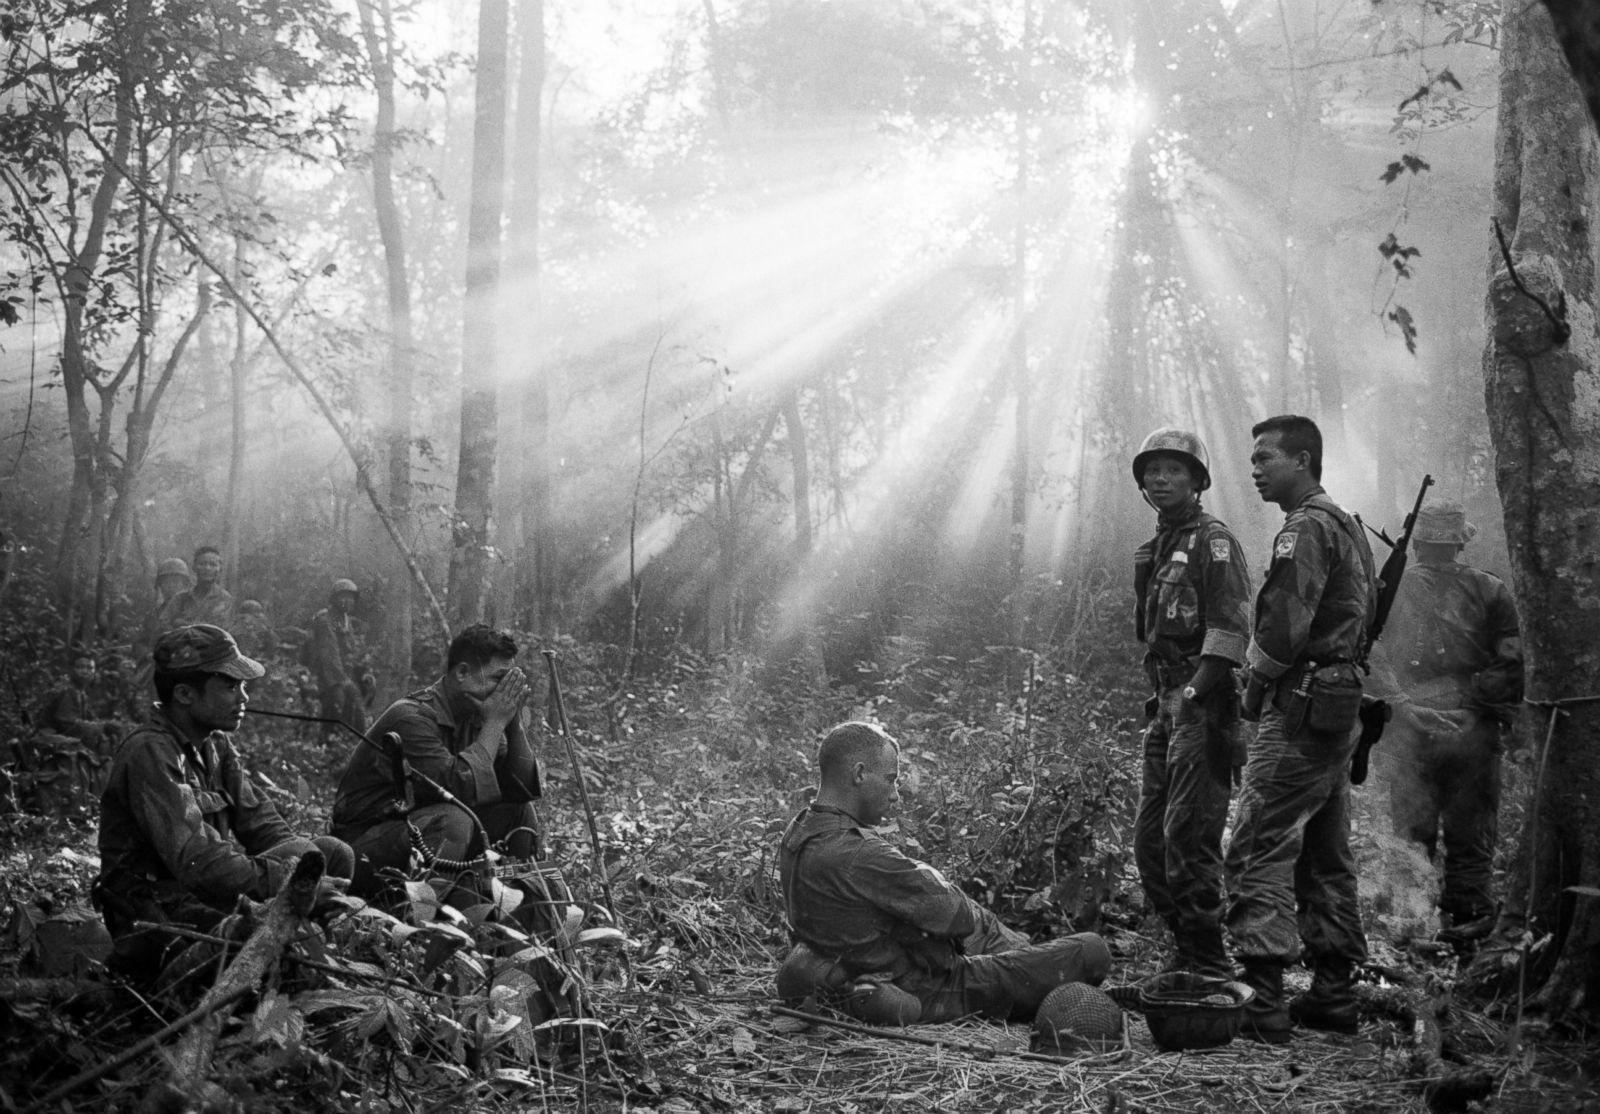 What are your reactions on the Vietnam war?